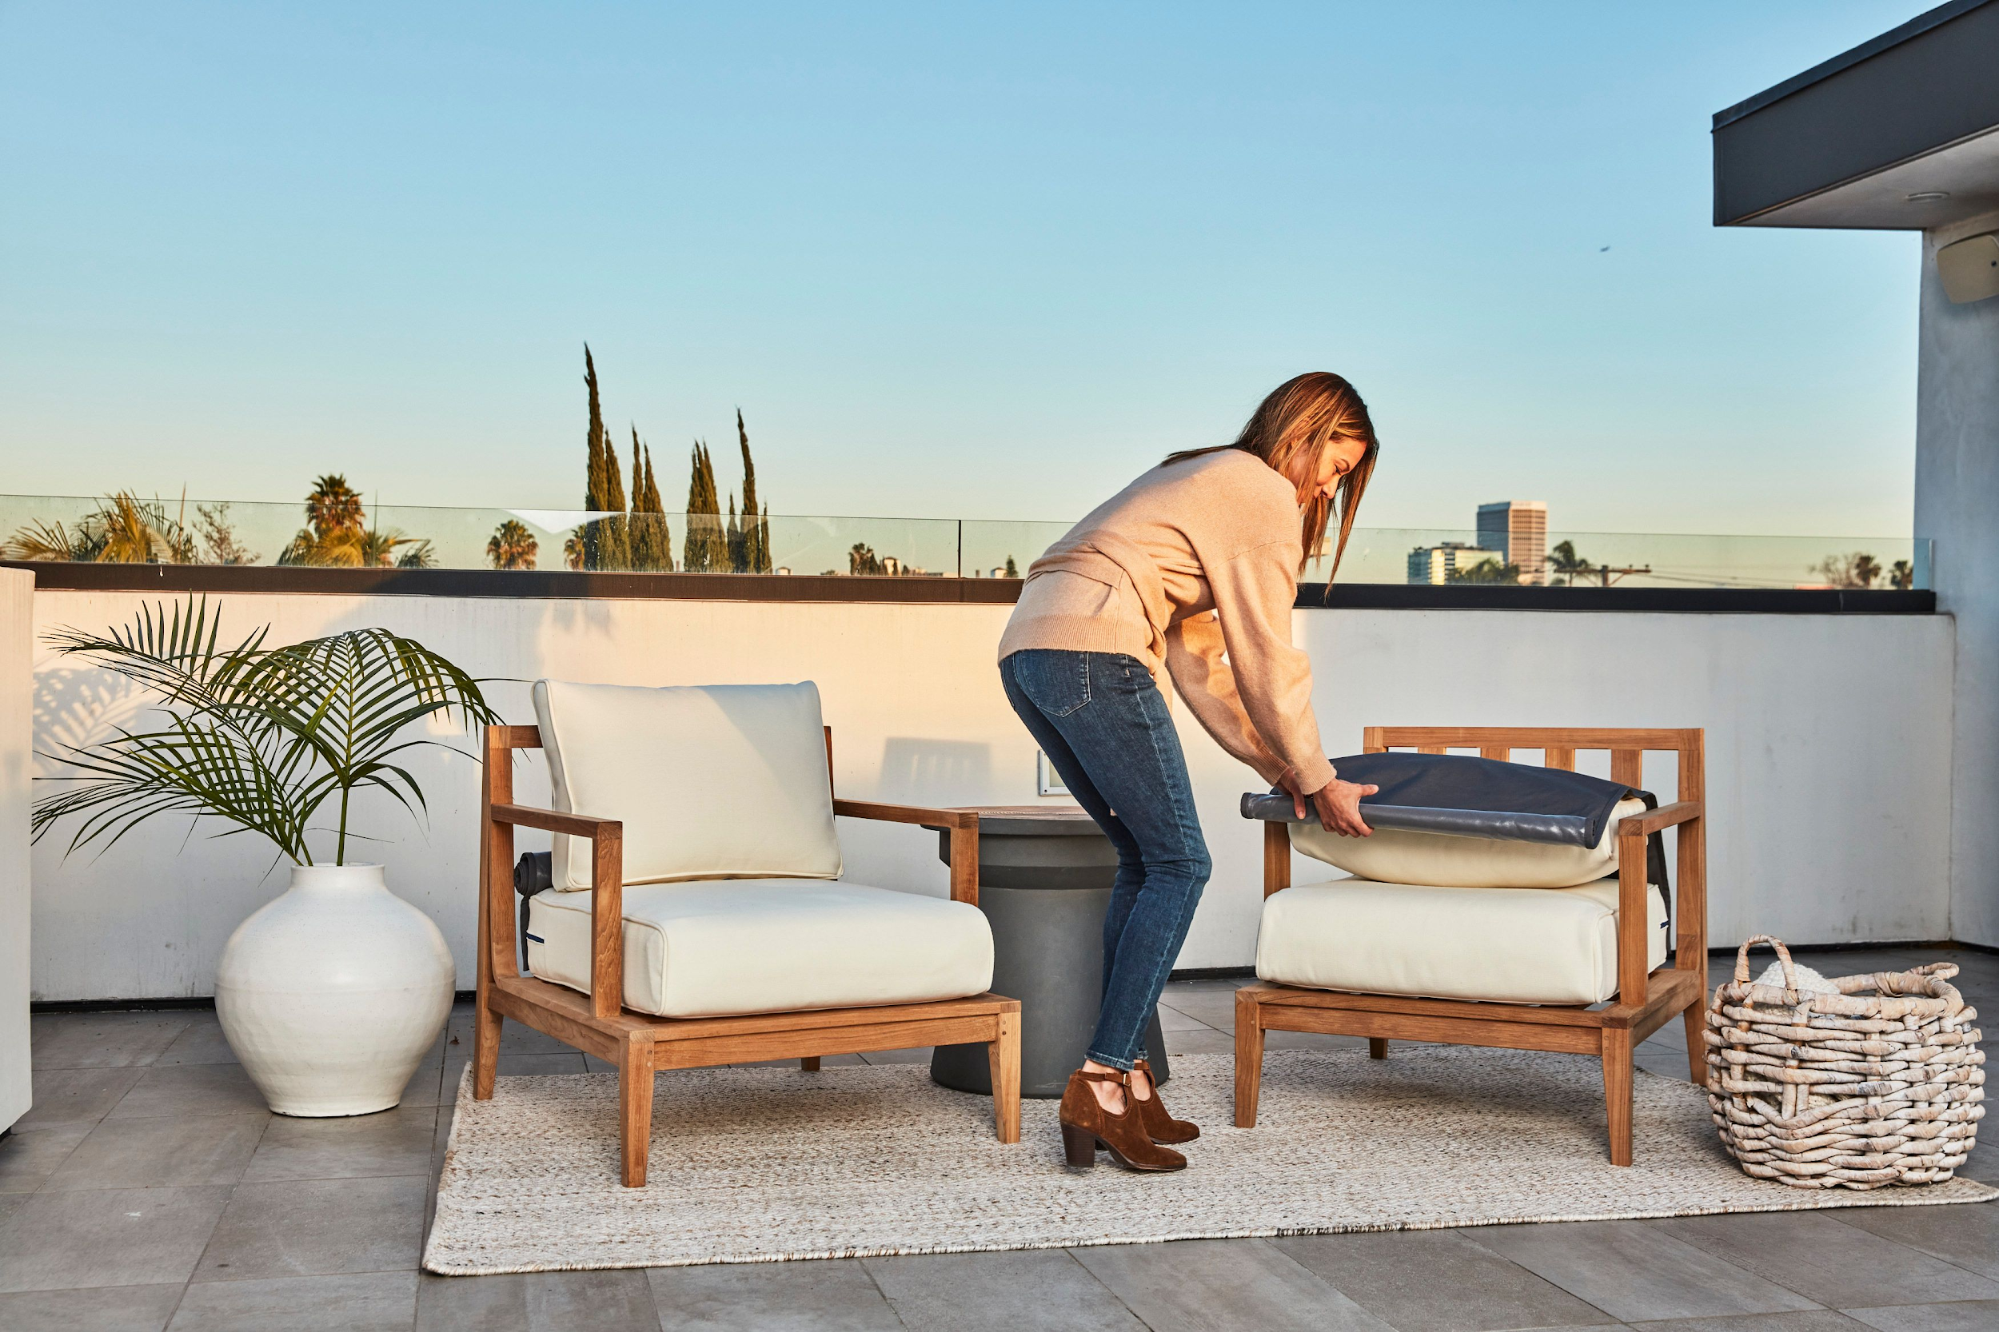 Woman setting up cushions on patio furniture